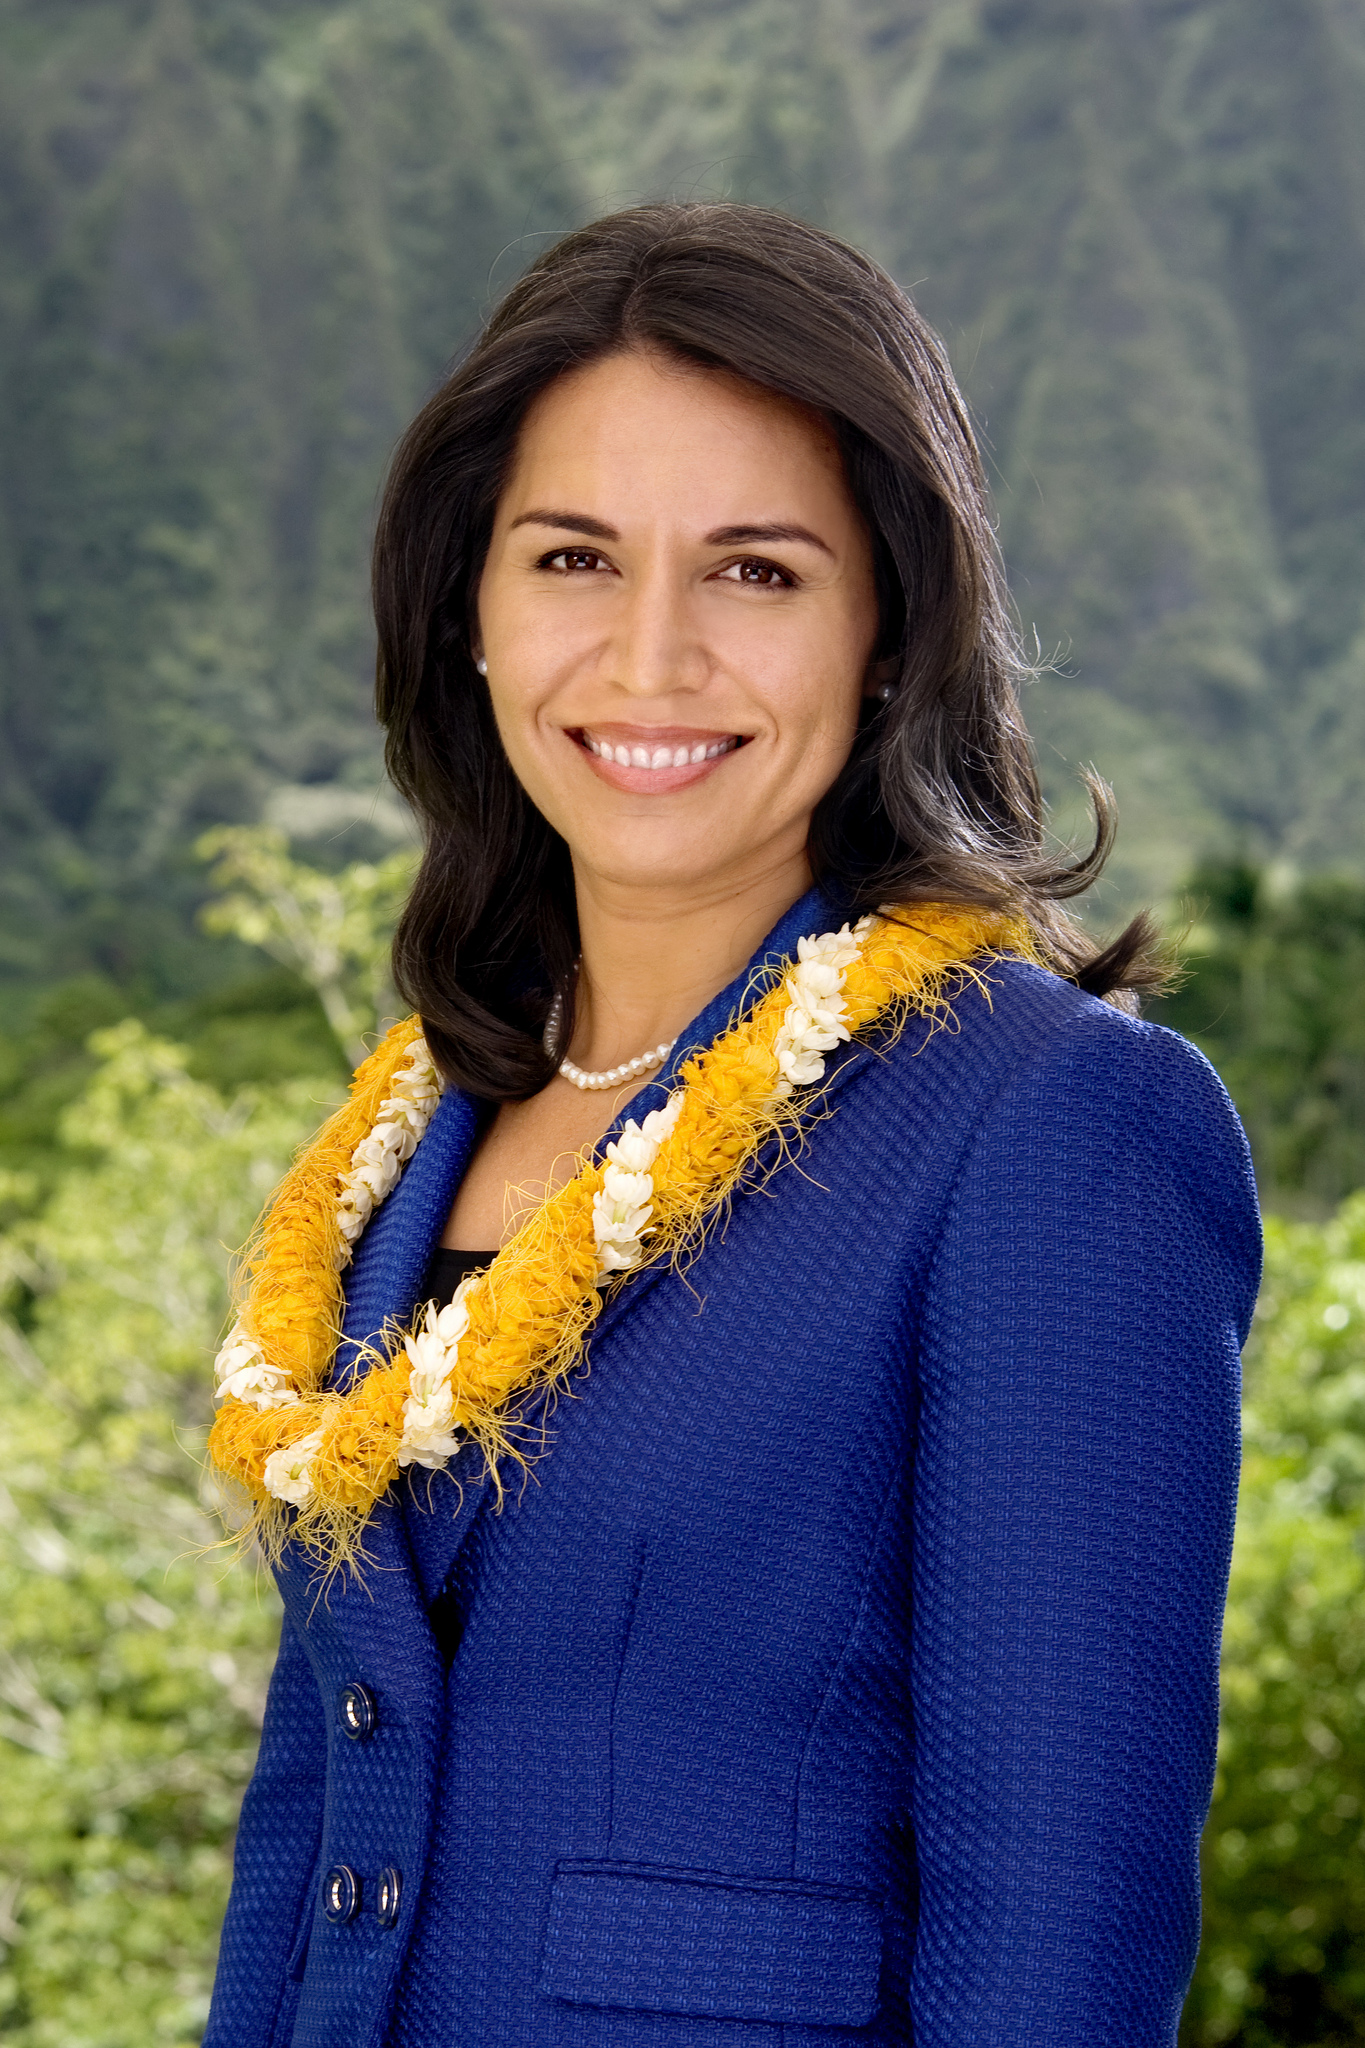 CONGRESSWOMAN TULSI GABBARD (D-HI 2ND DISTRICT)    Keynote Address    Tulsi Gabbard spent her life growing up in beautiful Hawai'i. As a teenager, she co-founded an environmental non-profit called Healthy Hawai'i Coalition, focused on educating children about protecting Hawaii's environment.    An advocate for environmental policy, Tulsi was elected to the Hawai'i State Legislature in 2002 when she was just 21 years old, becoming the youngest person ever elected in the state. A year later, she joined the Hawai'i Army National Guard to serve Hawai'i and our country. In 2004, Tulsi volunteered to deploy with her fellow soldiers, becoming the first state official to voluntarily step down from public office to serve in a war zone.    Tulsi served two tours of duty in the Middle East, and she continues her service as a Major in the Army National Guard. Tulsi's 2005 deployment was a 12-month tour at Logistical Support Area Anaconda in Iraq, where she served in a field medical unit as a specialist with a 29th Support Battalion medical company. She was awarded the Meritorious Service Medal at the end of this tour.     Read more here.